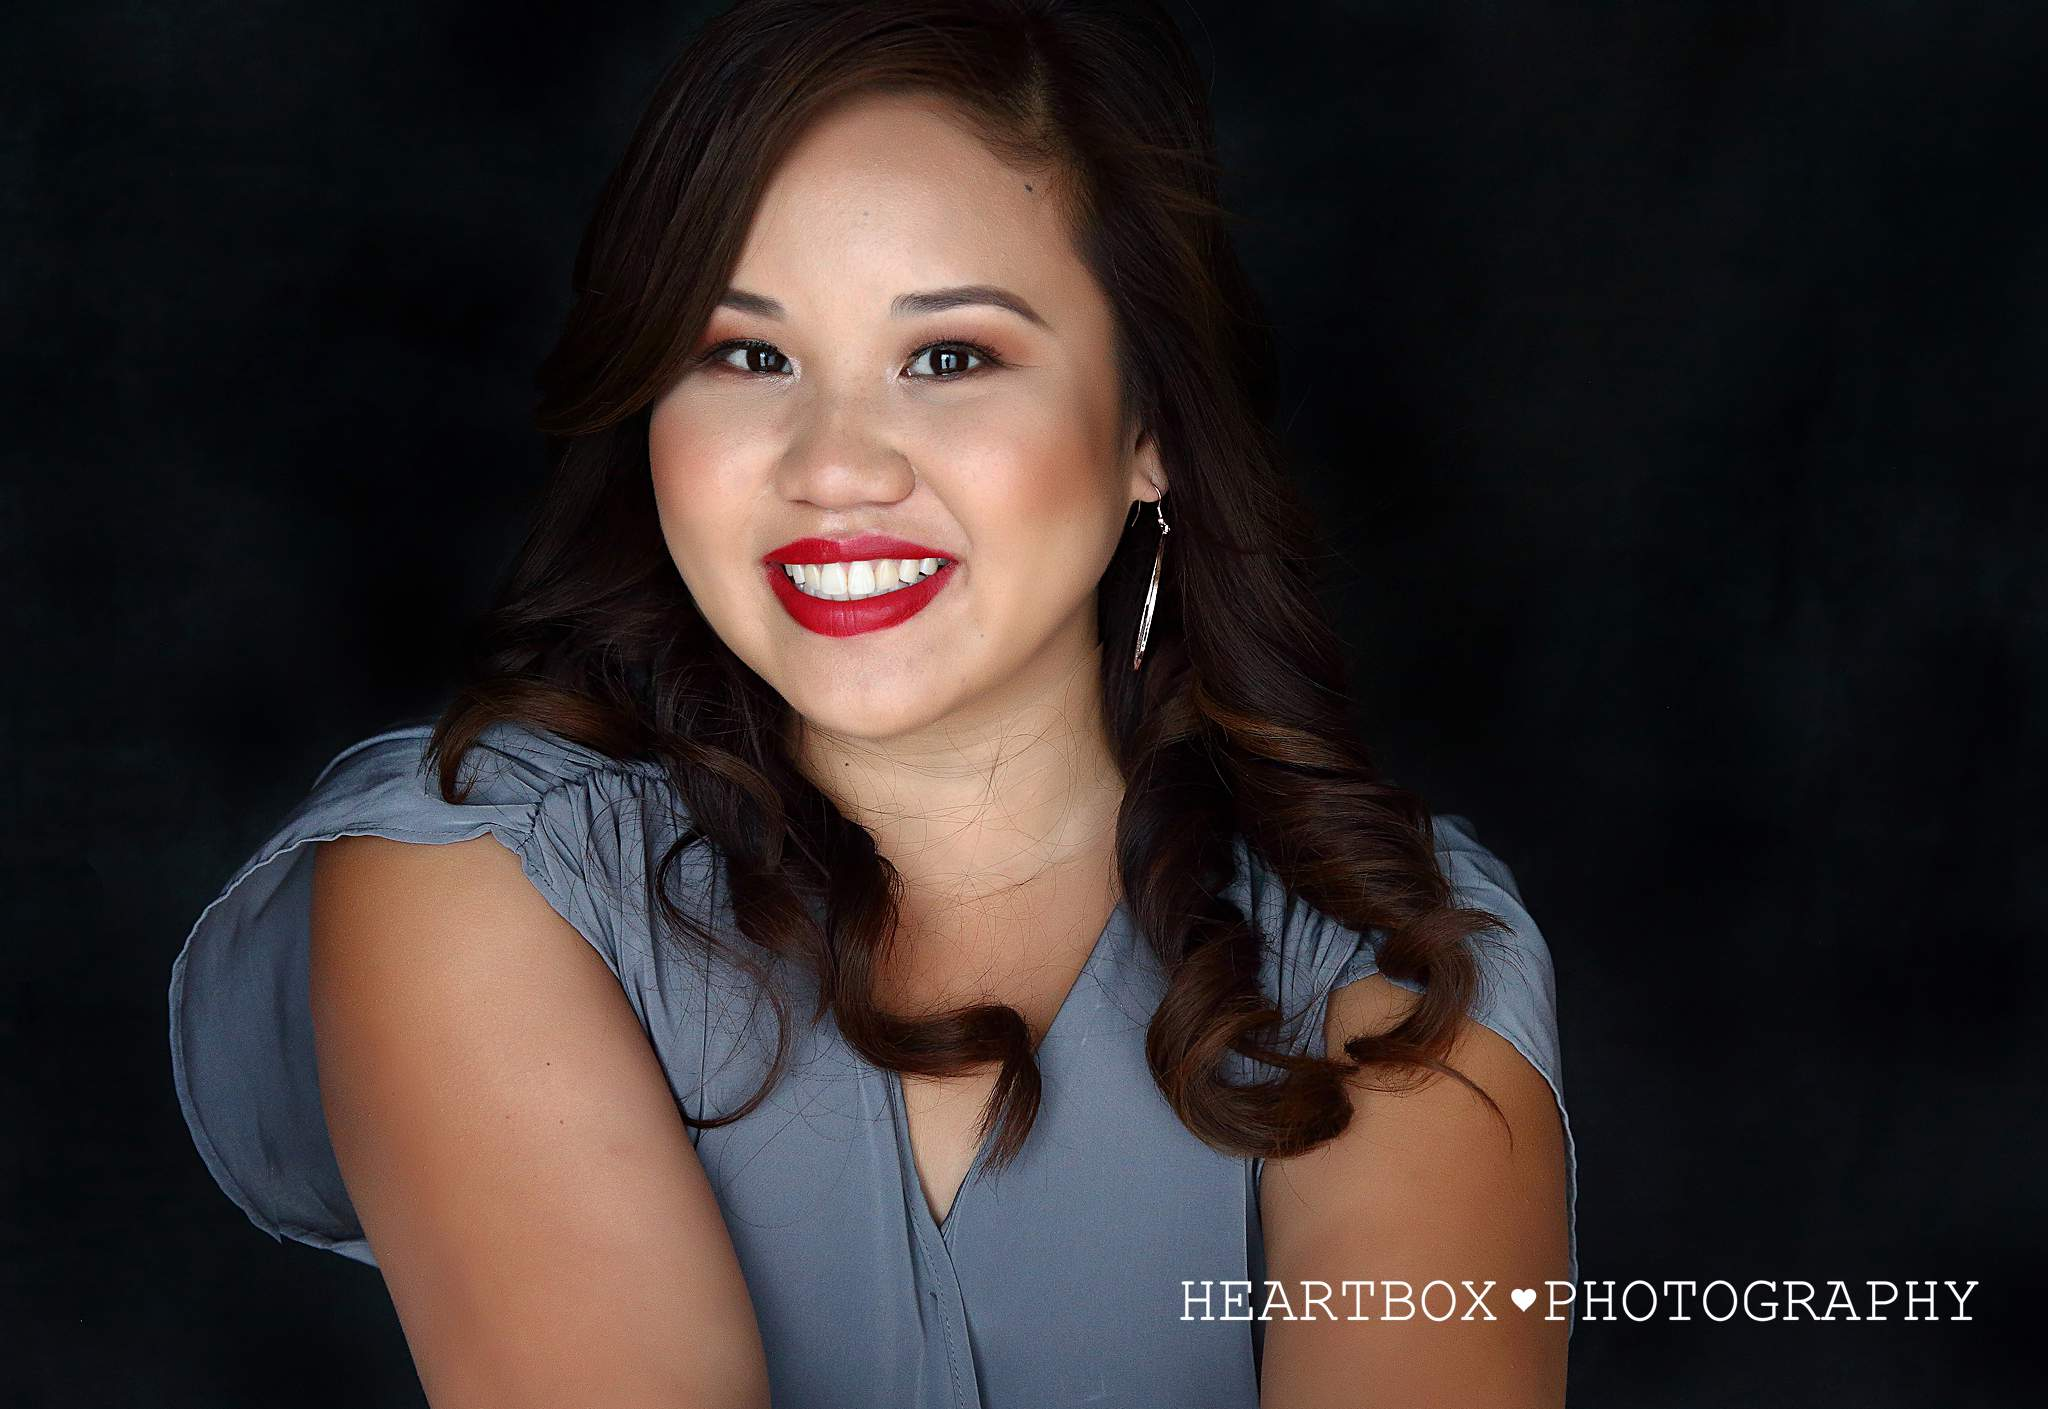 Portraits by Heartbox Photography. Copyright 2017. All rights reserved._0009.jpg